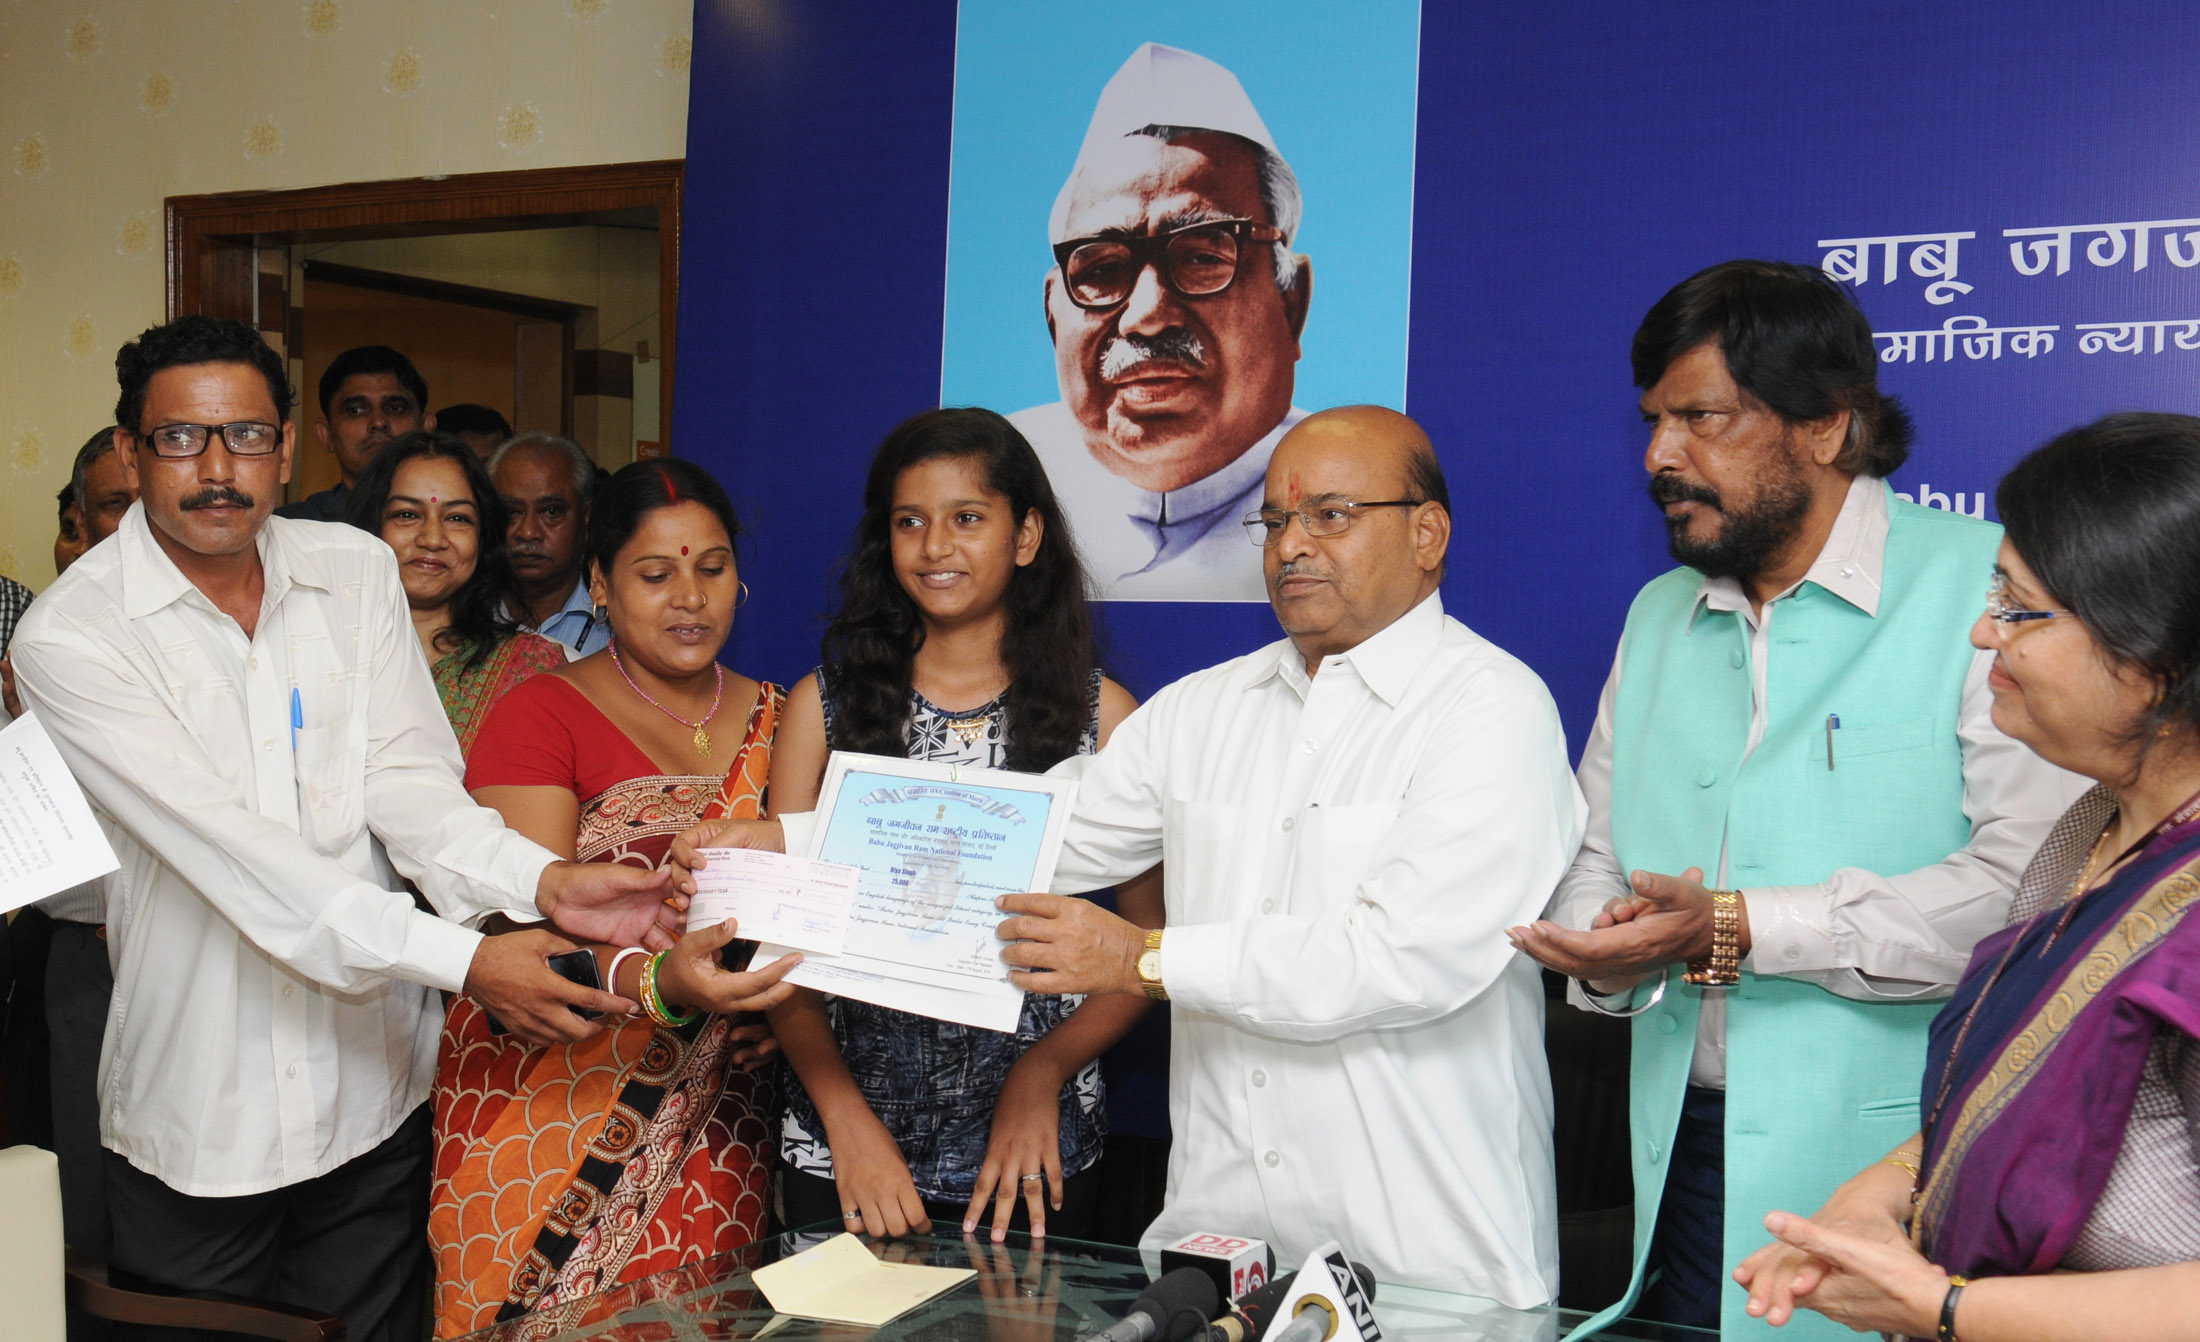 babu jagjivan ram all india essay competition 2015